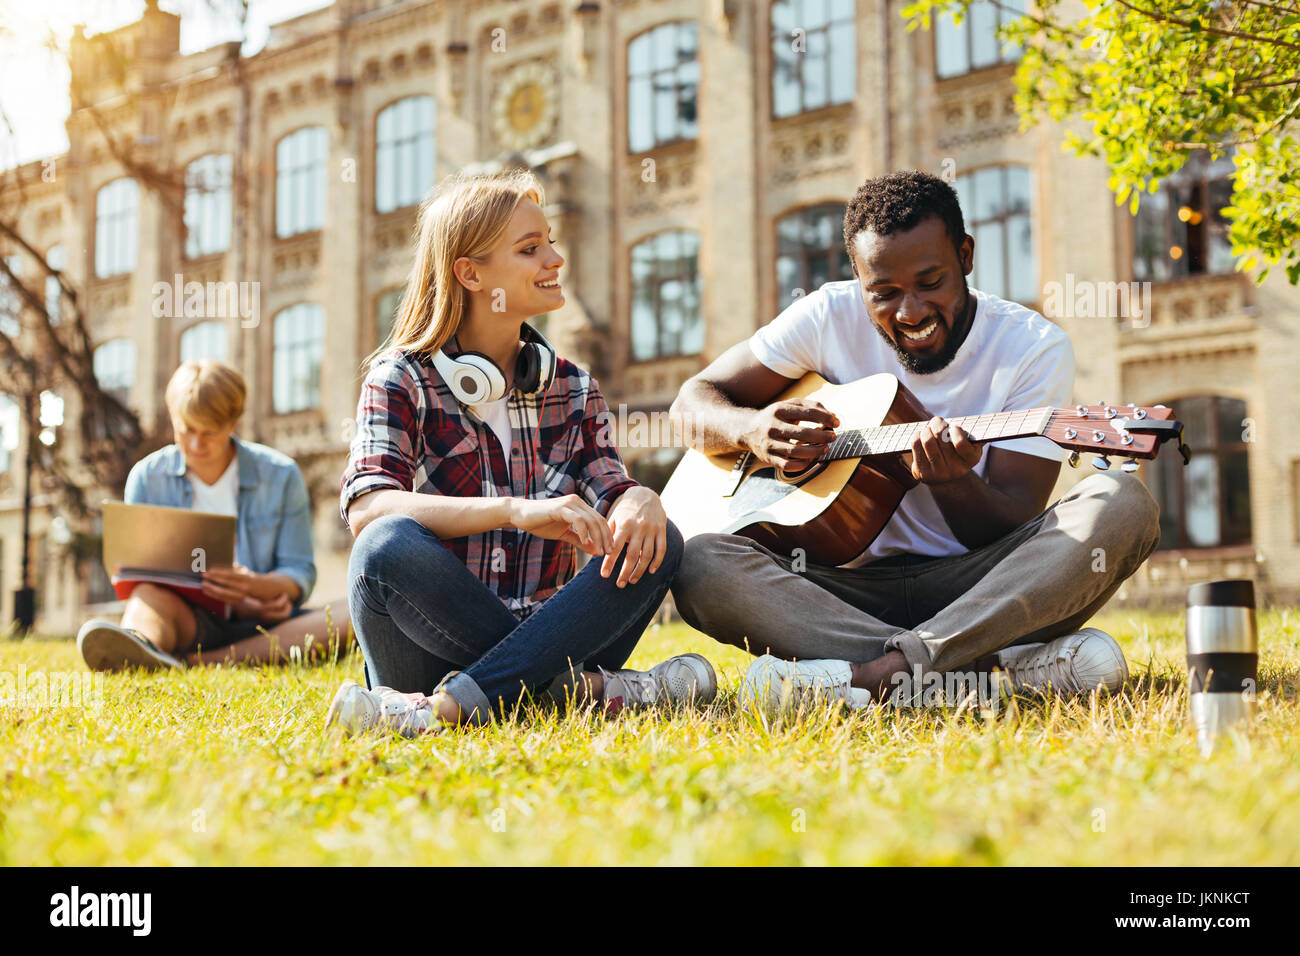 Artistic positive man trying impressing his friend - Stock Image